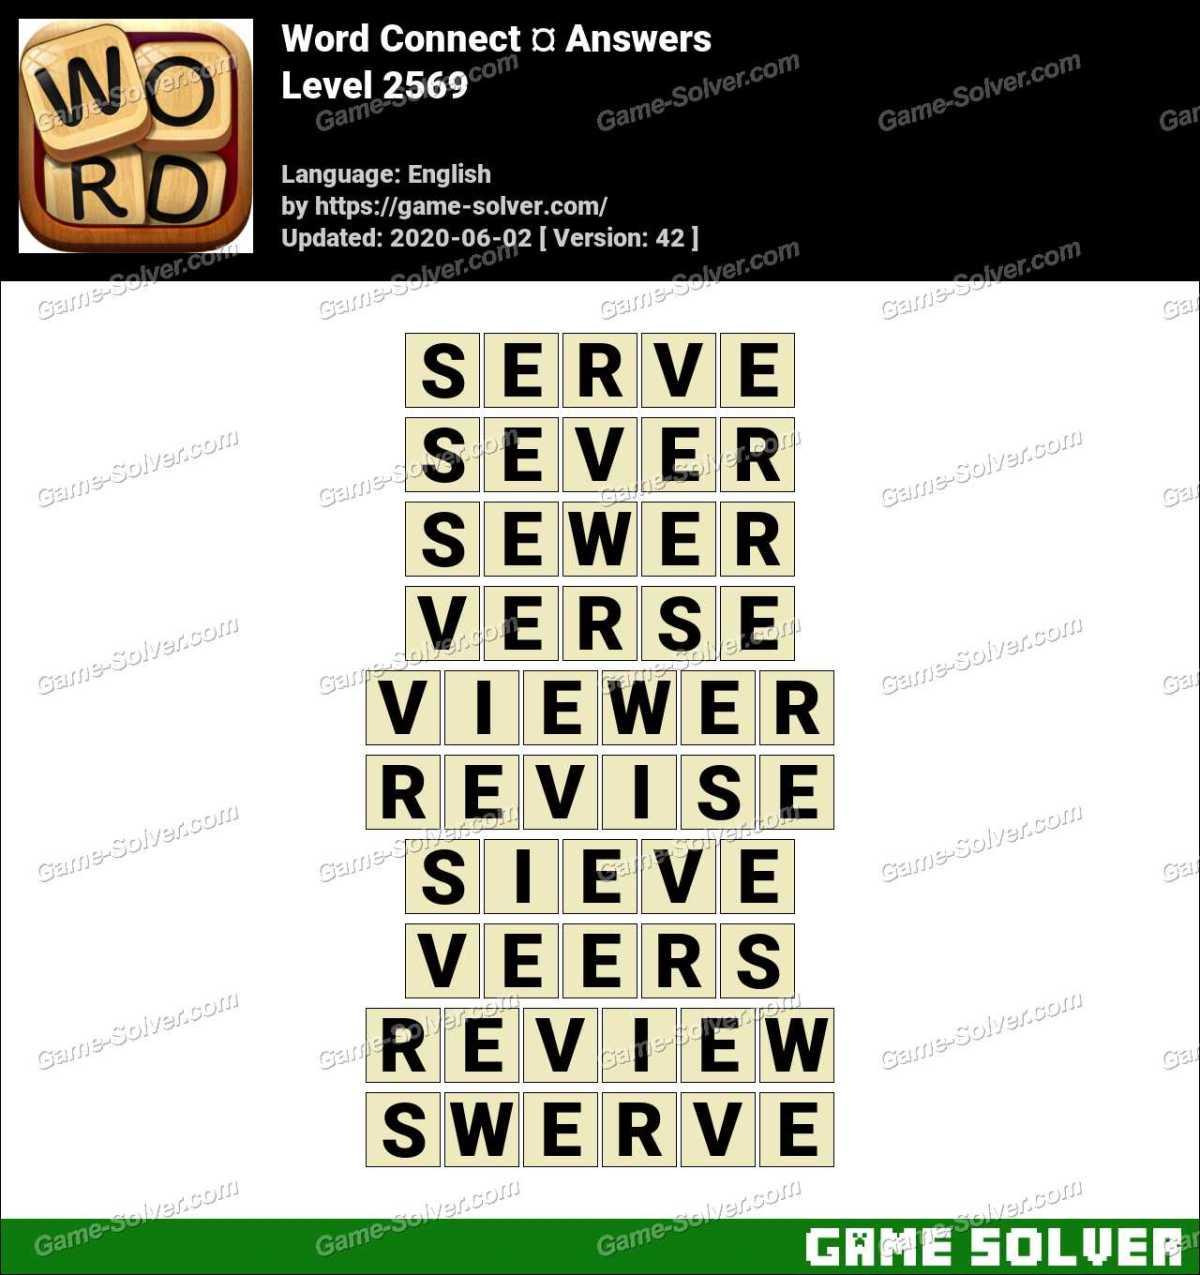 Word Connect Level 2569 Answers